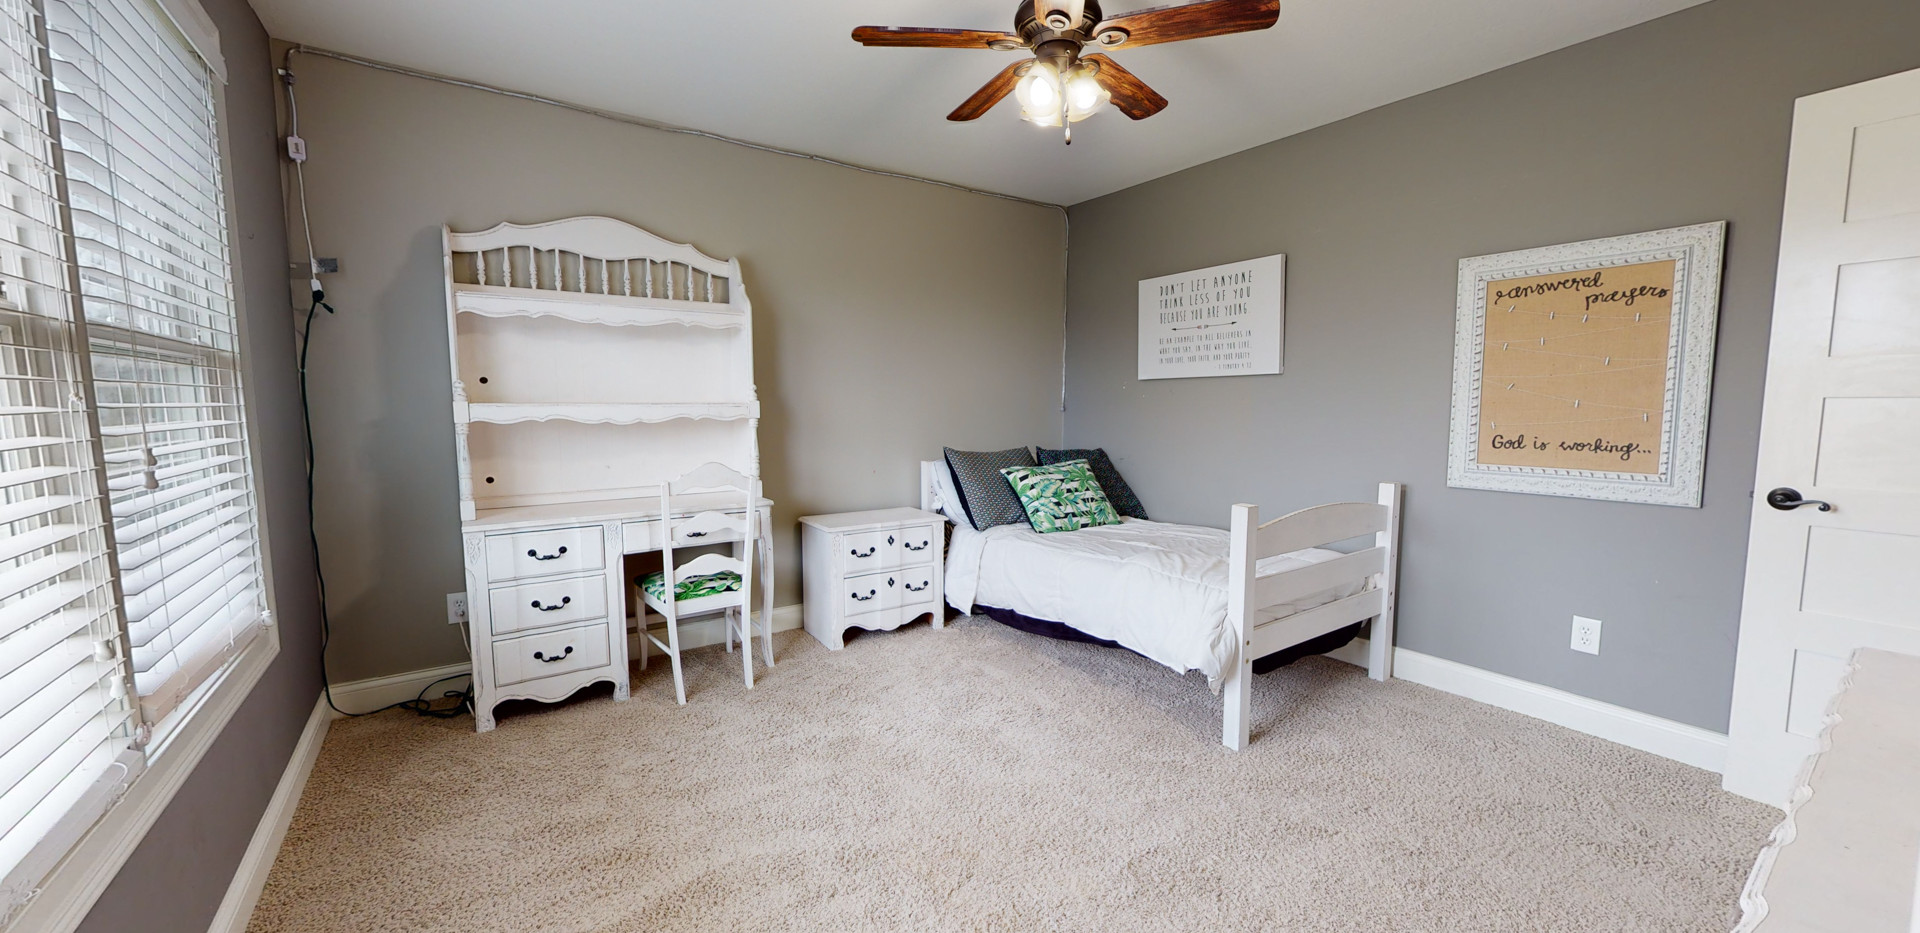 Kid's bedroom with white furniture and modern grey walls.